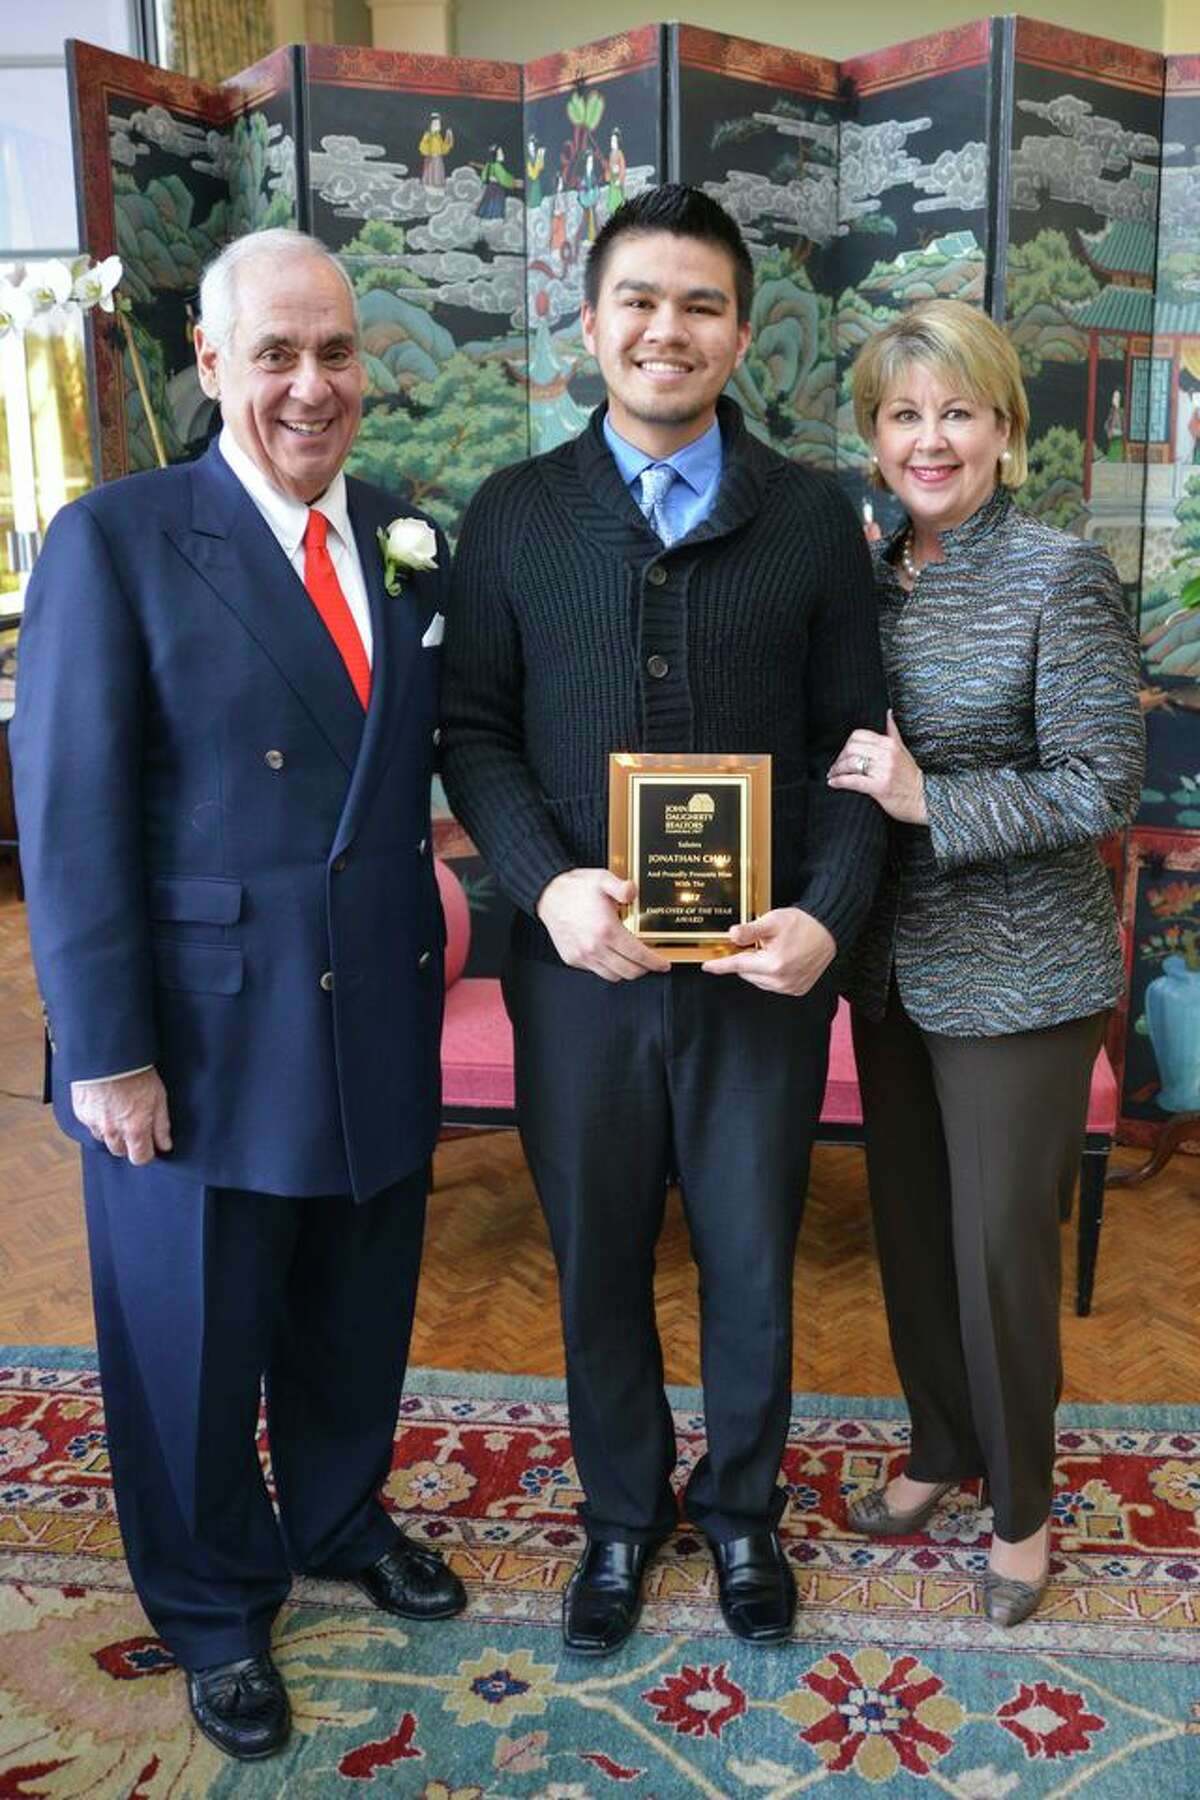 Jonathan Chau, center, was named Employee of the Year. Chau is with John Daugherty and Cheri Fama.